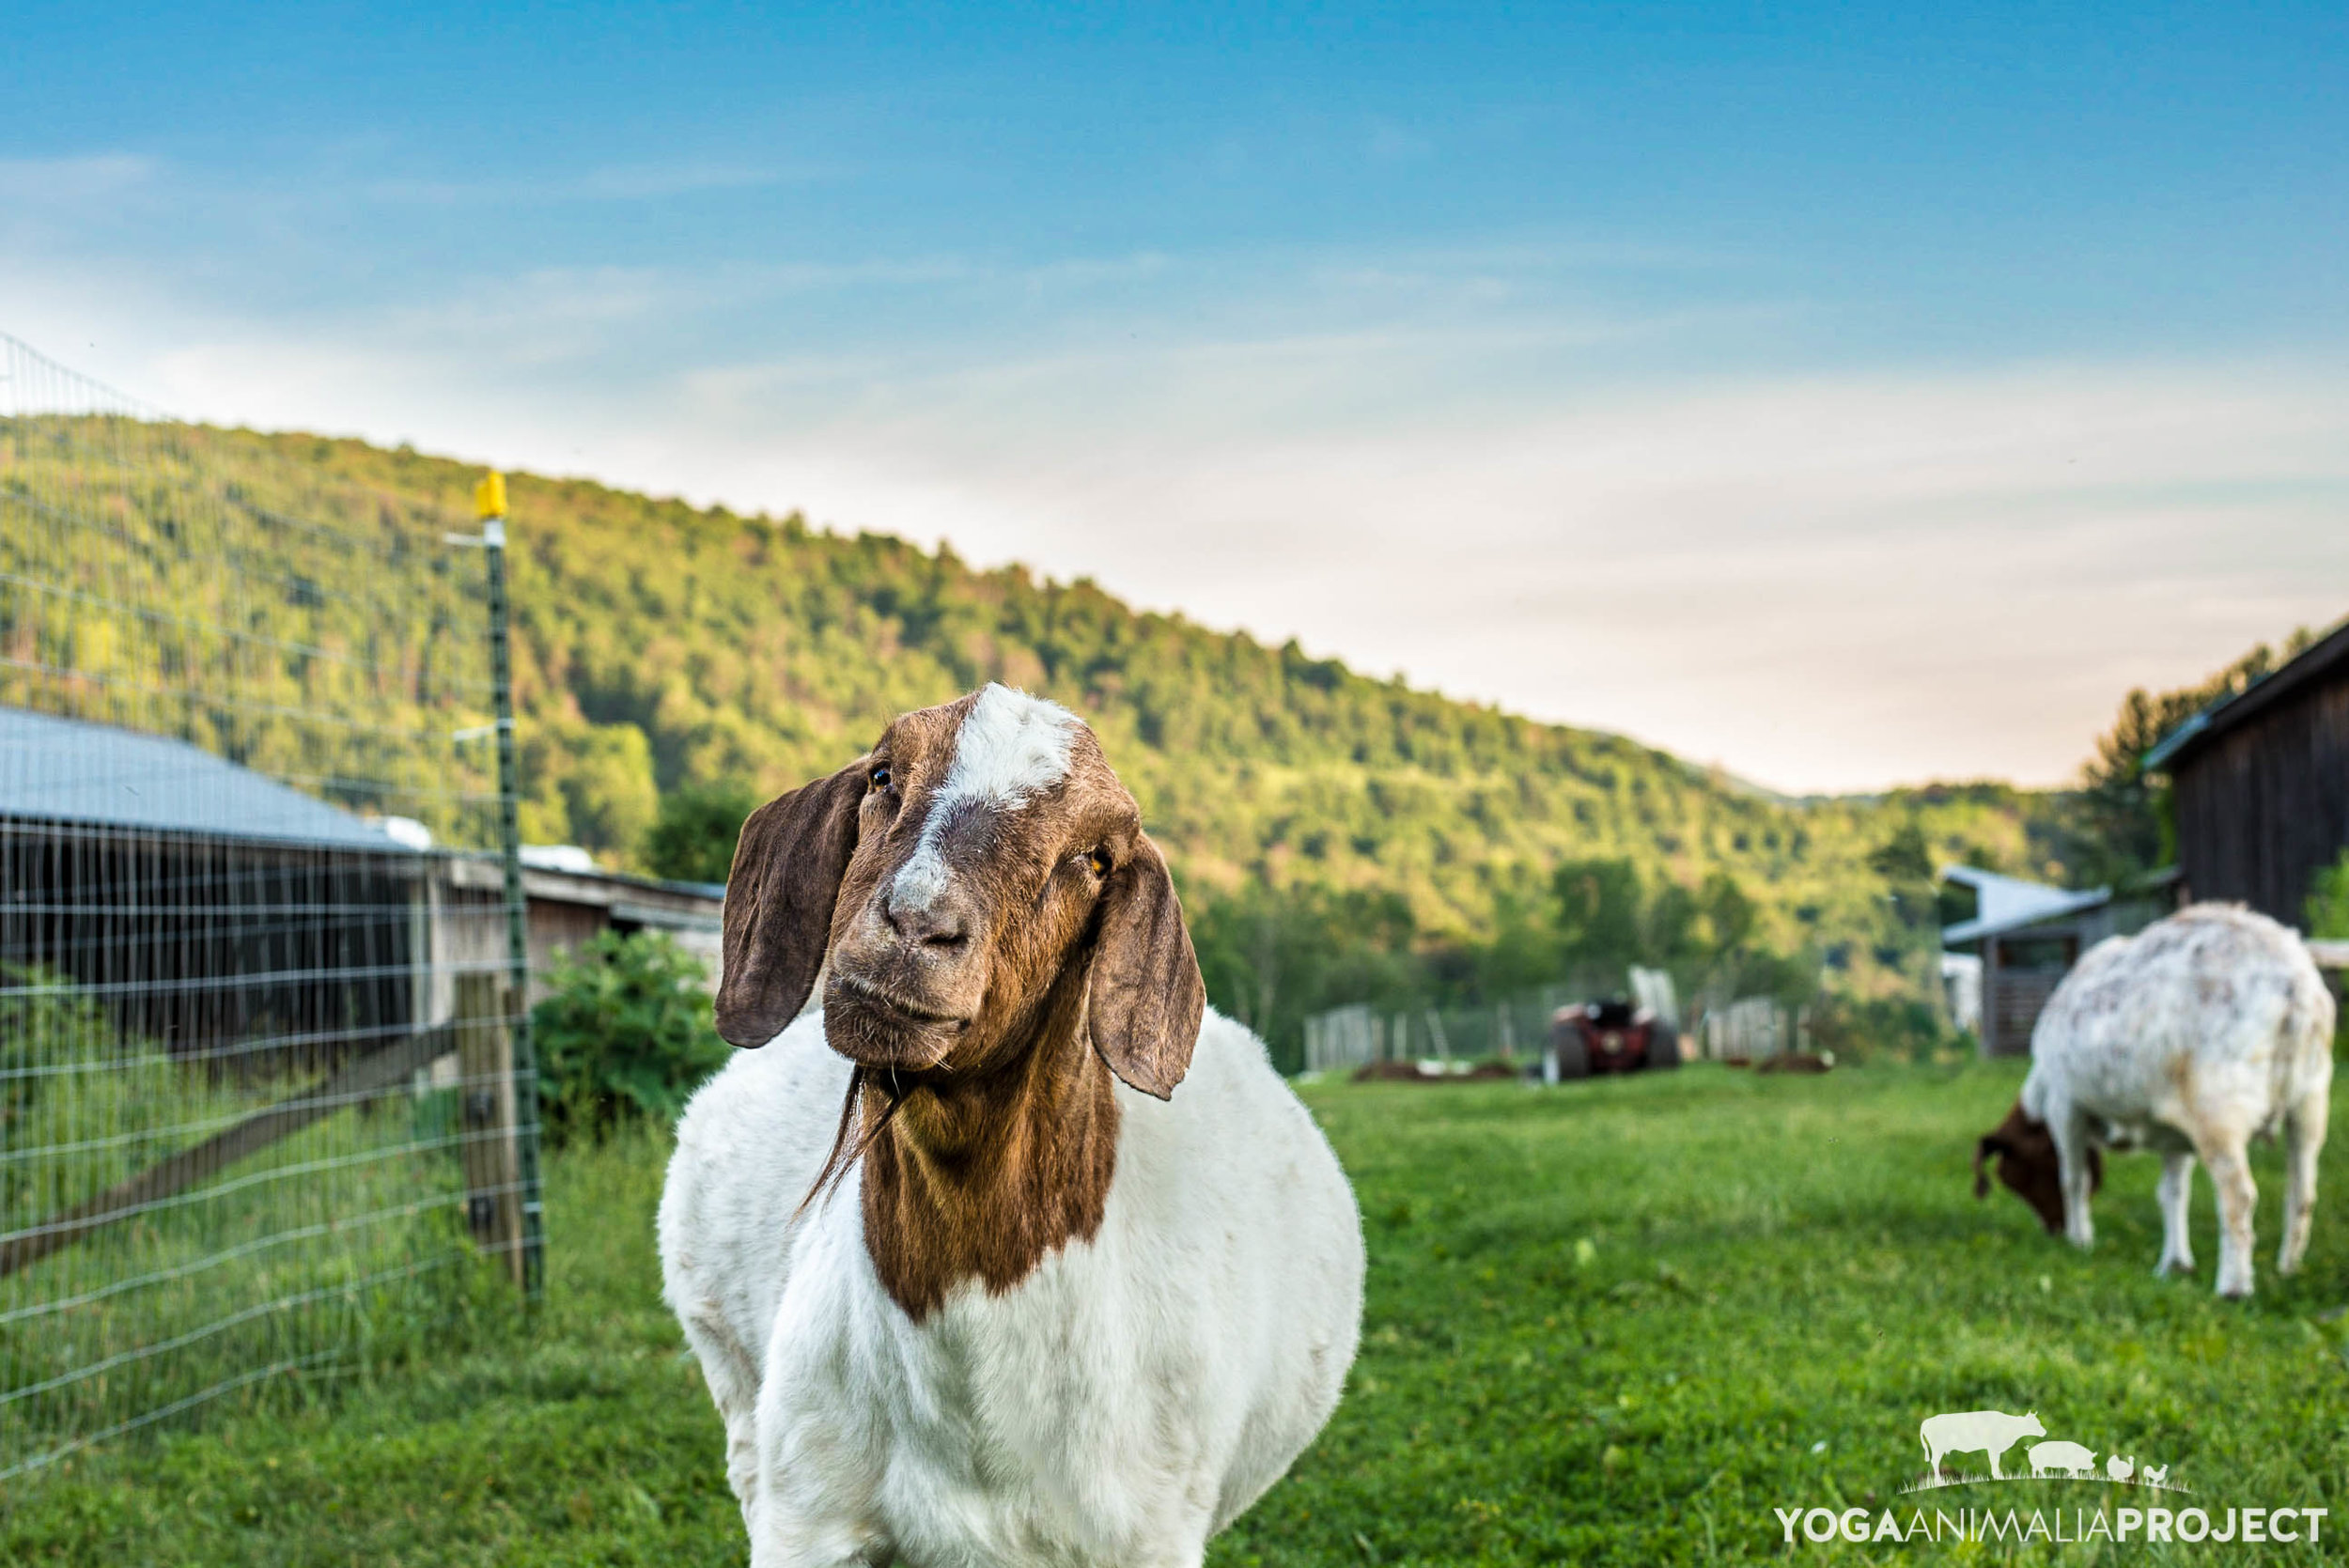 Vanna goat with her partner in crime Maddie in the rear, Indraloka Animal Sanctuary, Mehoopany, Pennsylvania